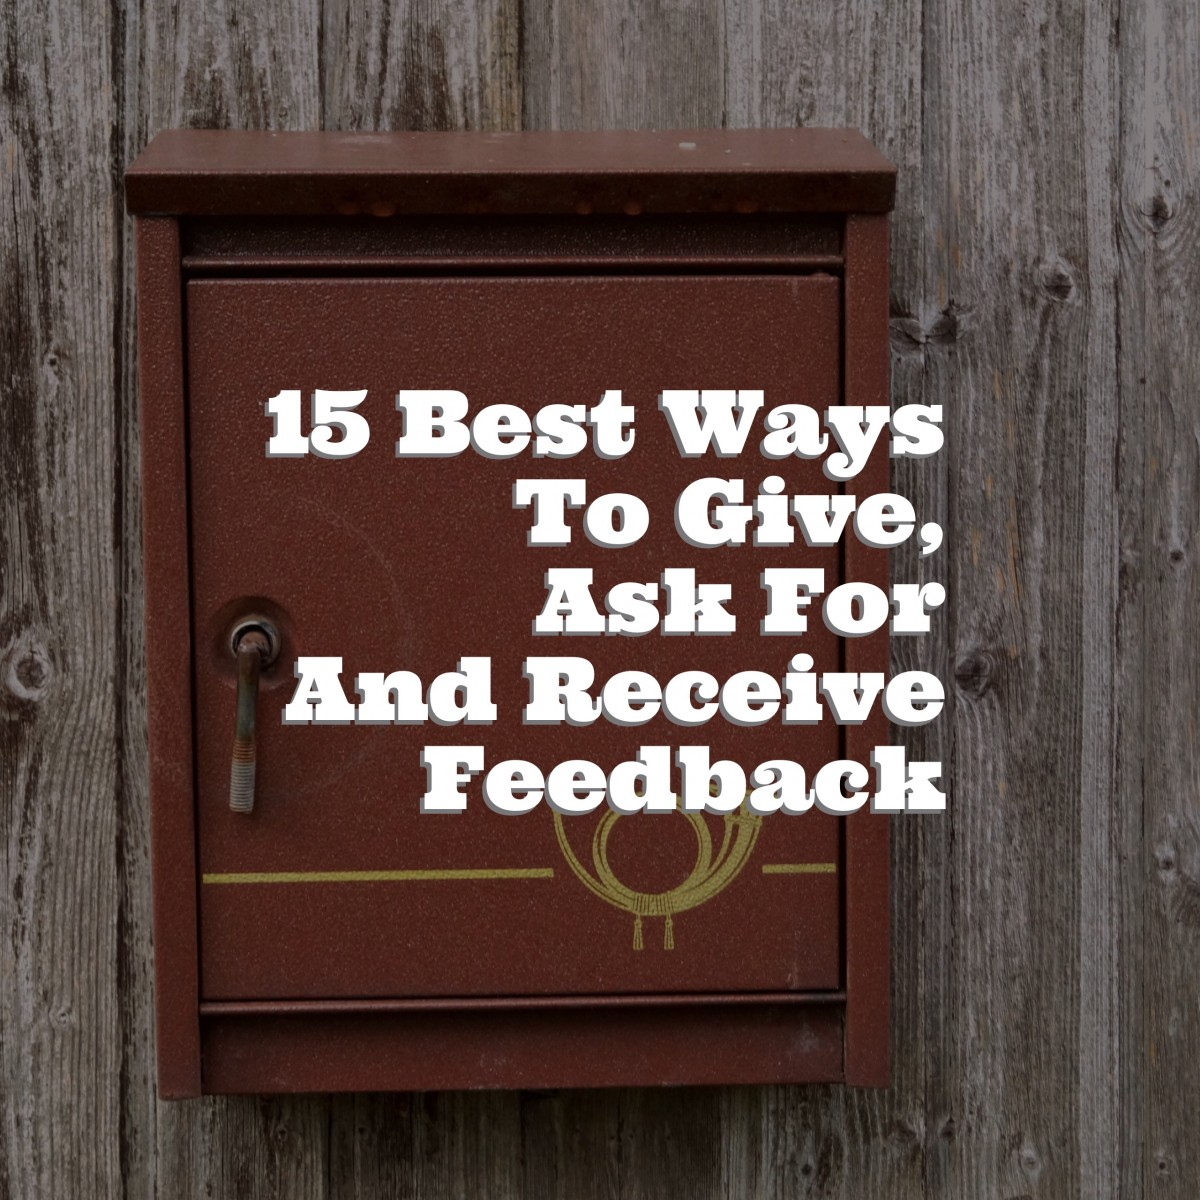 15 Best Ways To Give, Ask For And Receive Feedback